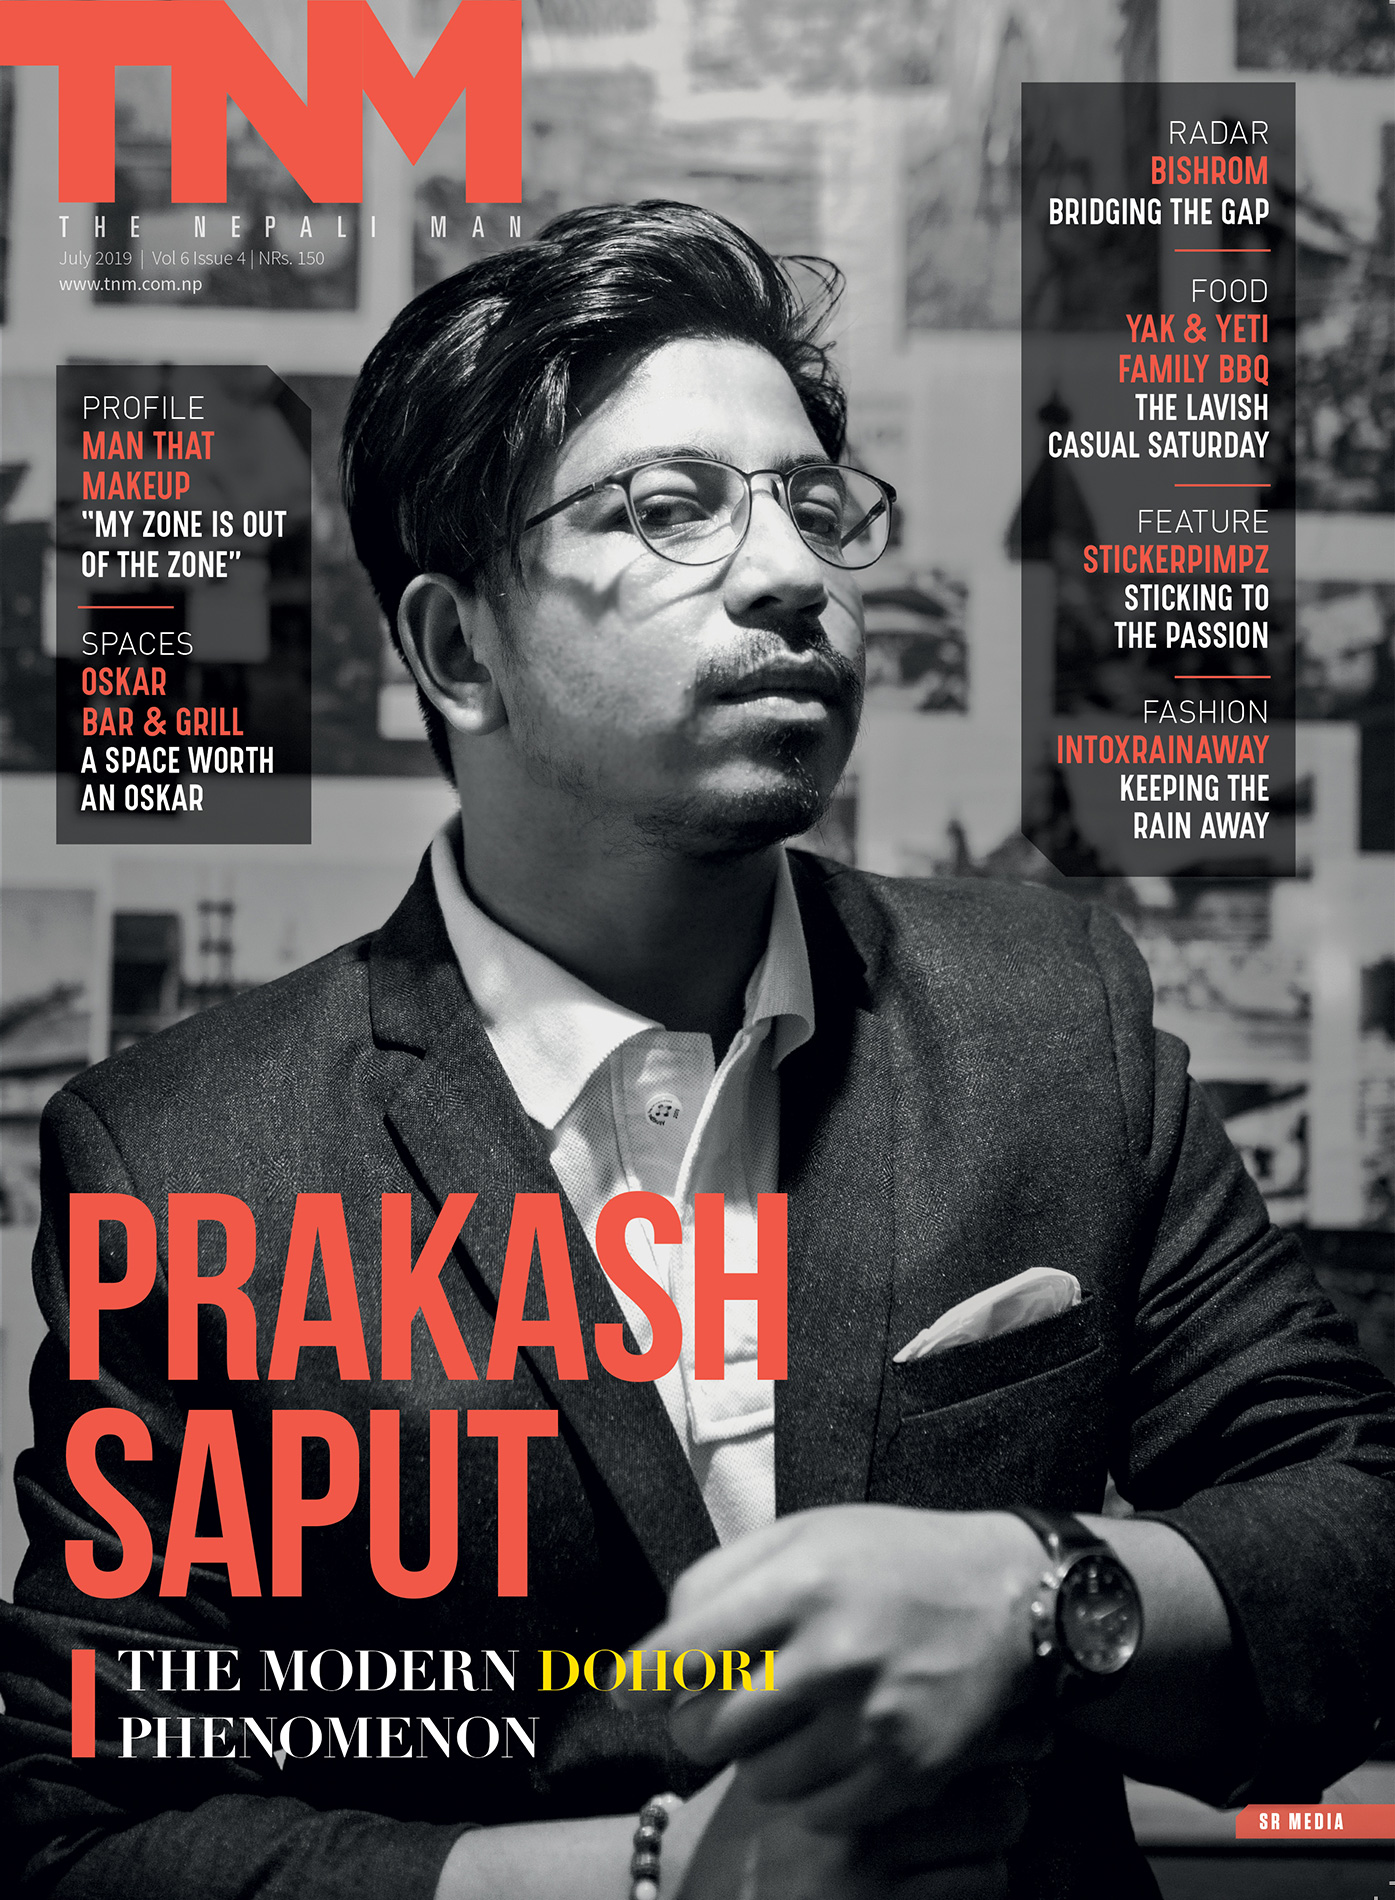 Volume 6 Issue 4: PRAKASH SAPUT